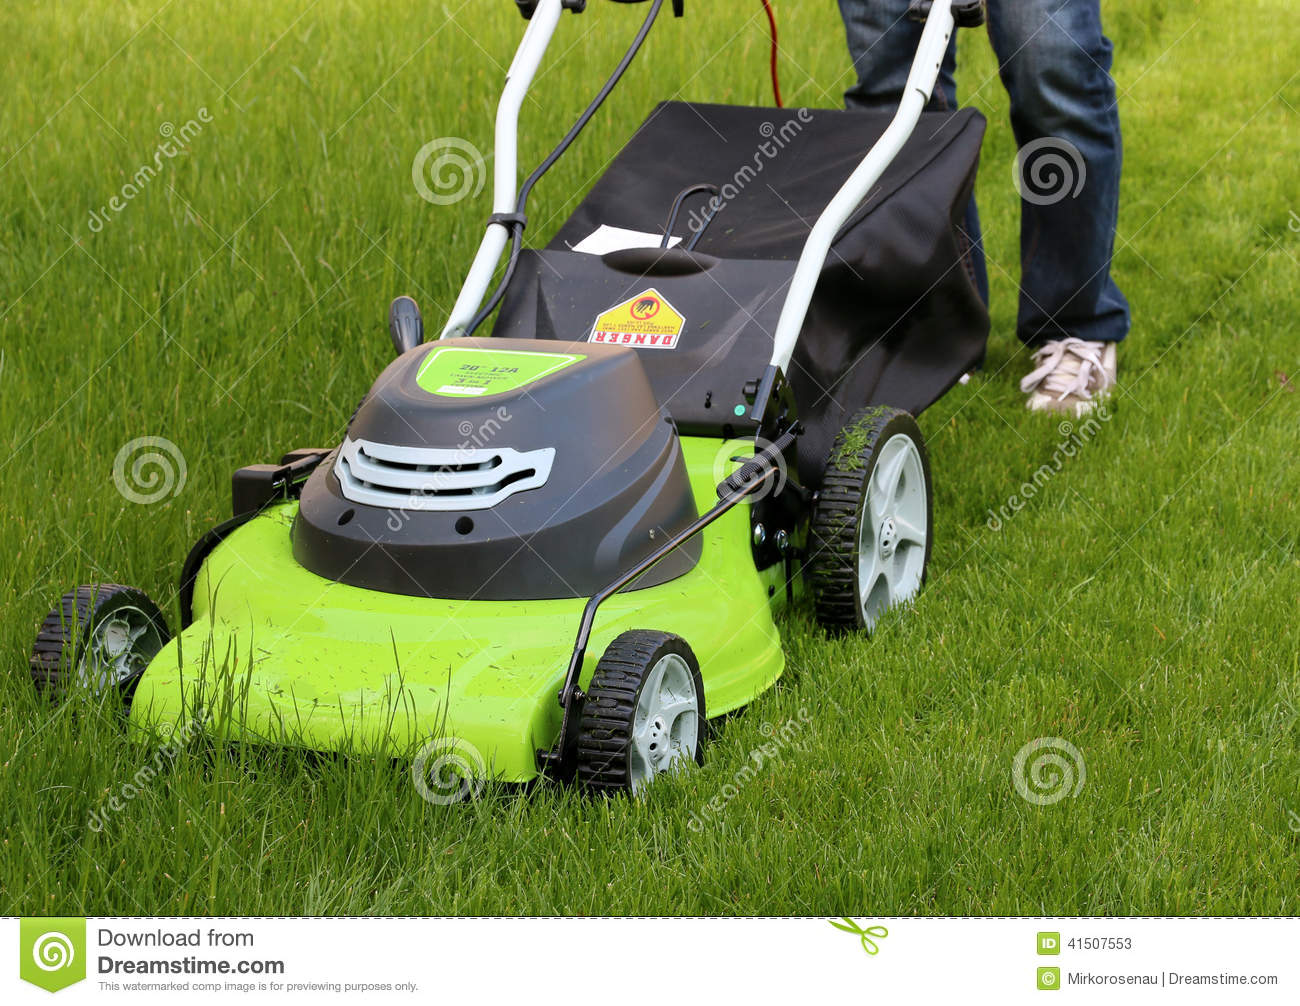 Man cutting the grass with lawn mower stock photo image for Lawn mower cutting grass